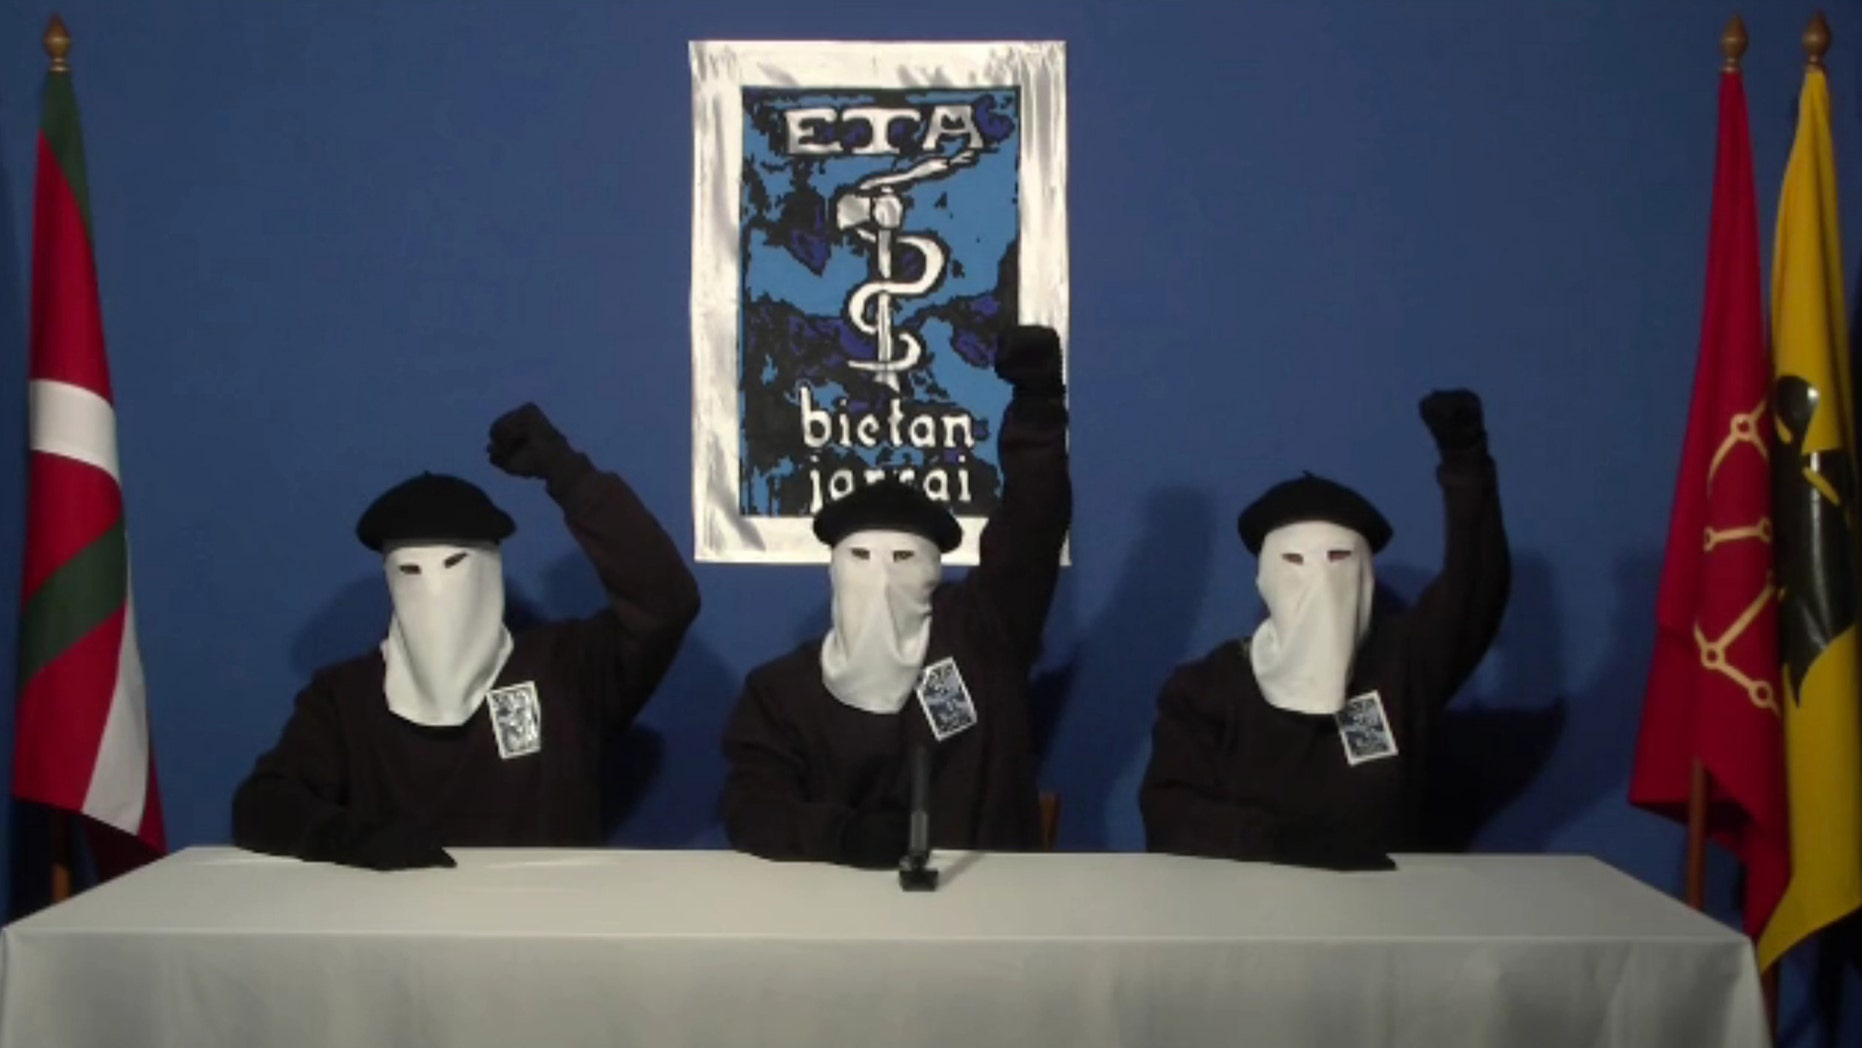 In this image made from video provided on Thursday, Oct. 20, 2011, masked members of the Basque militant group ETA gesture following a news conference at an unknown location. The Basque militant group ETA called an end to a 43-year violent campaign for independence on Thursday, Oct. 20, 2011 and now wants to open talks with Spain and France, a ground-breaking move that could pave the way for ending Europe's last armed militancy. (AP Photo/Gara via APTN)